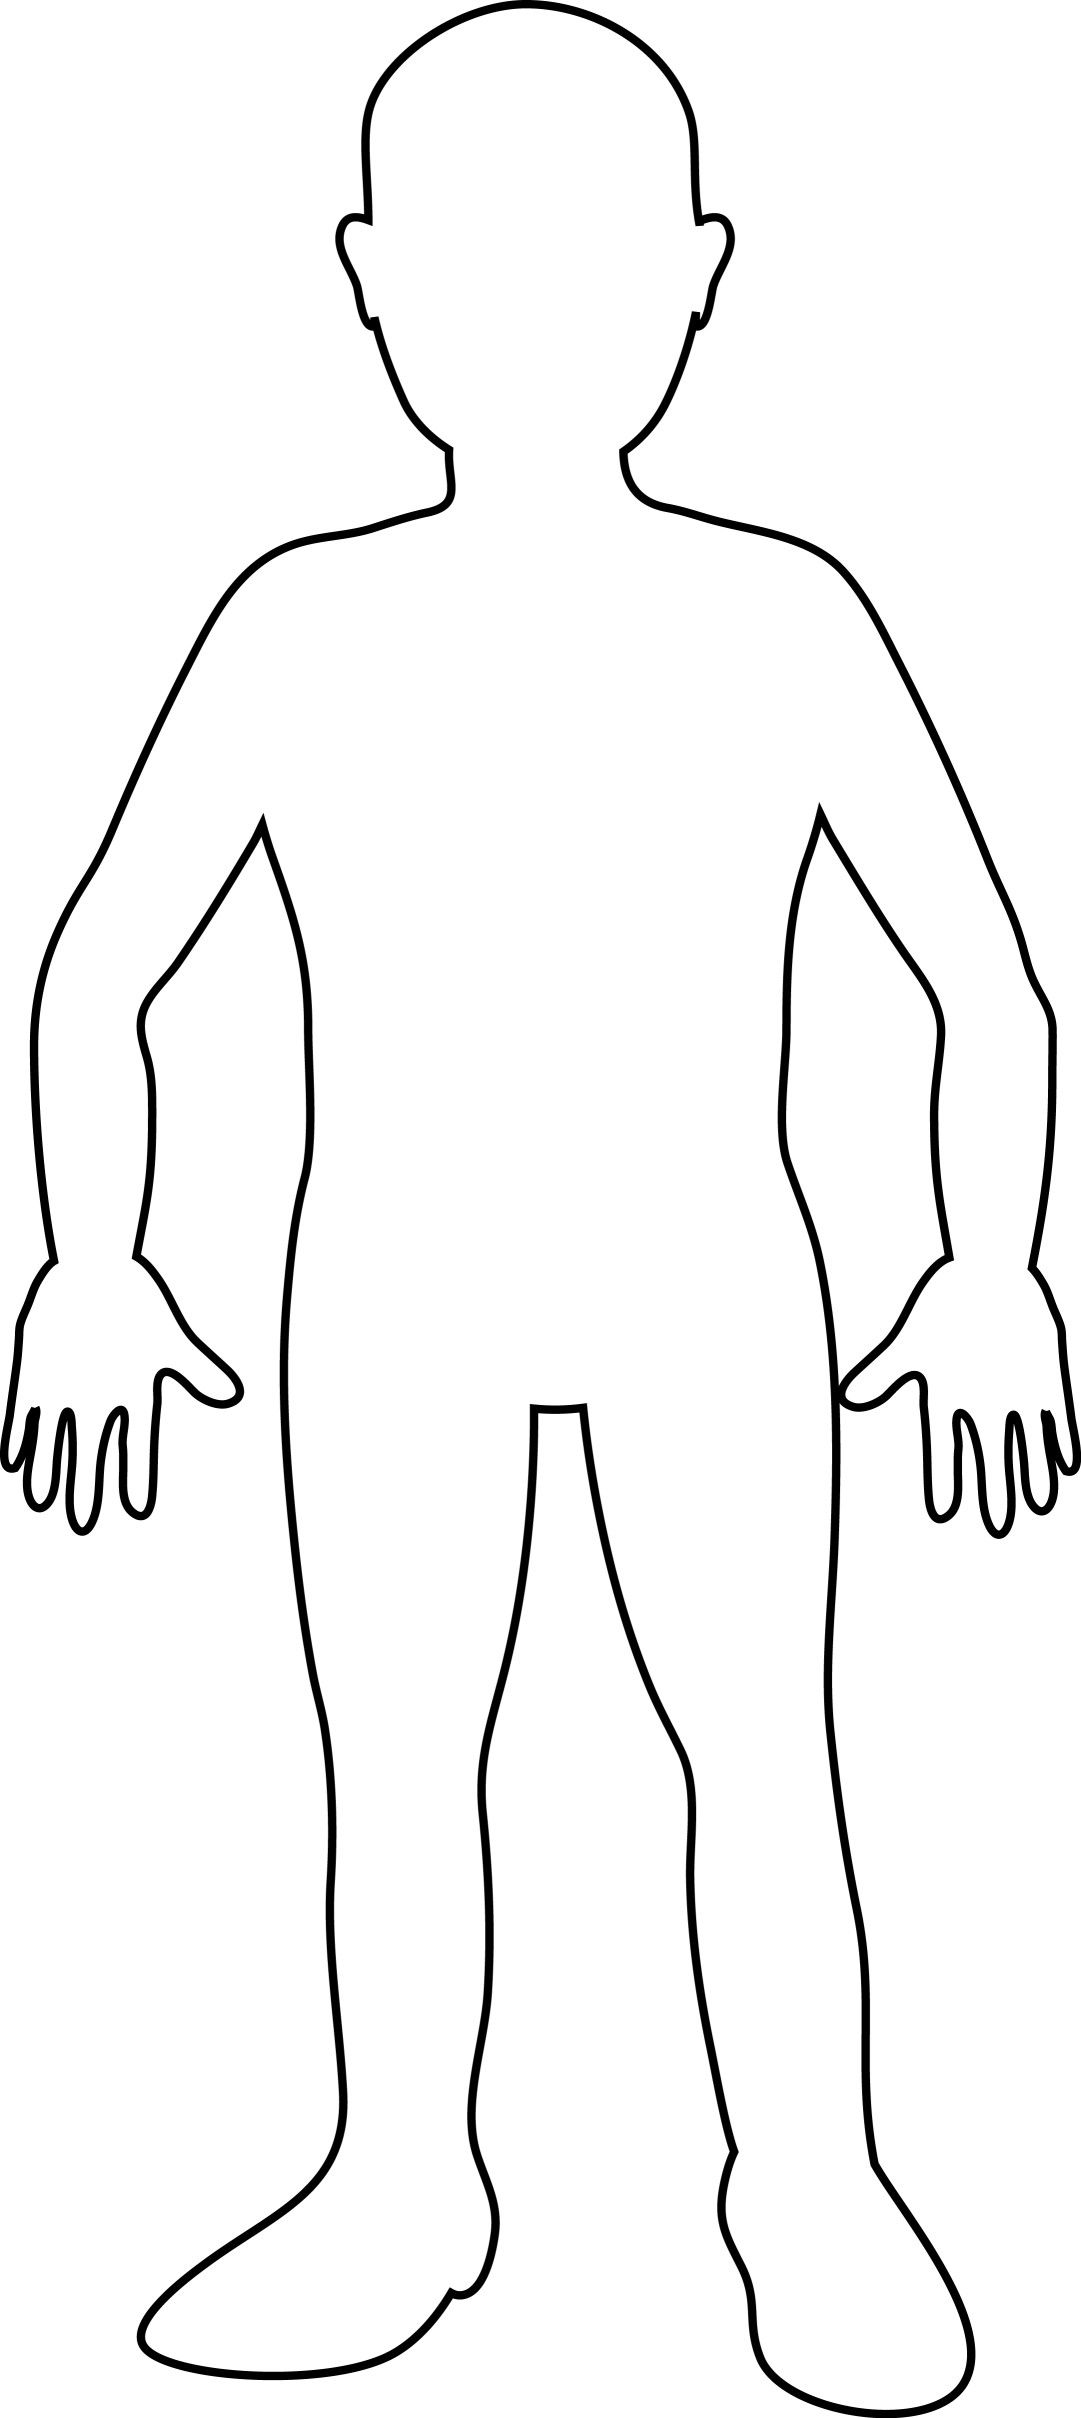 Organs clipart body shape Body Clipart Human Images Download